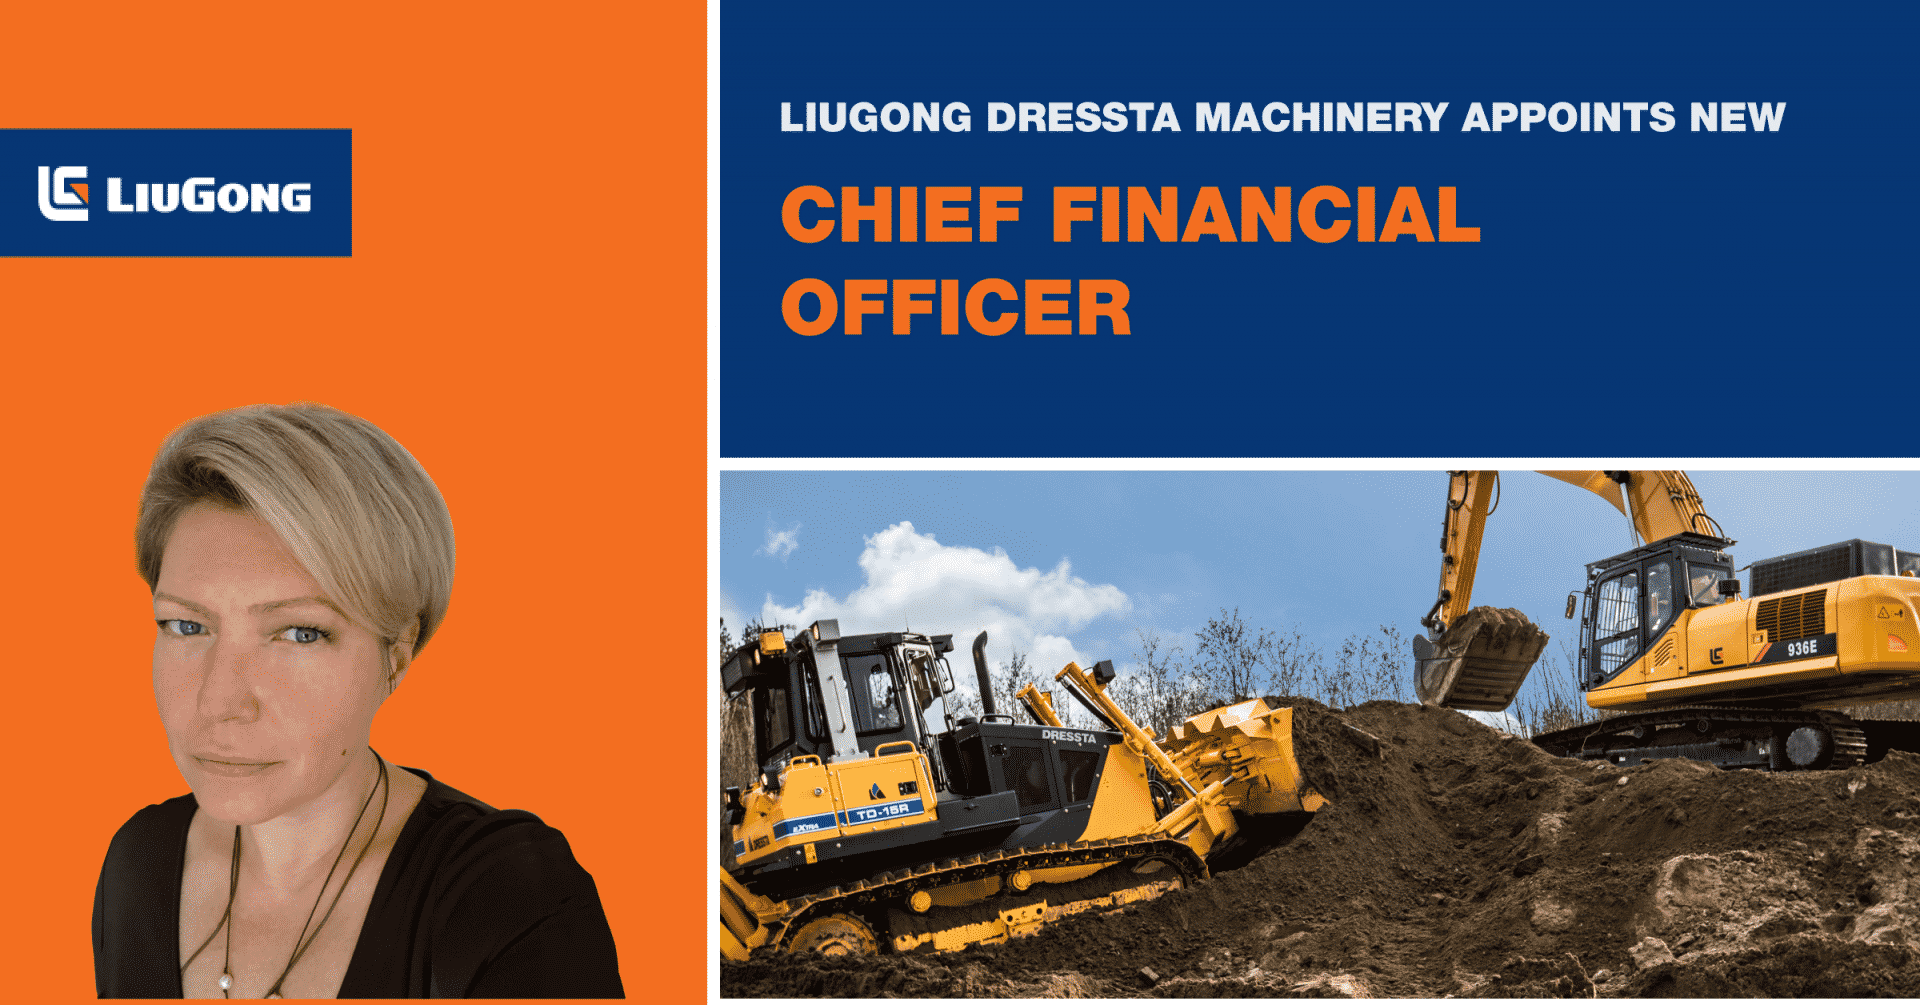 LiuGong Dressta Machinery announces appointment of New Chief Financial Officer